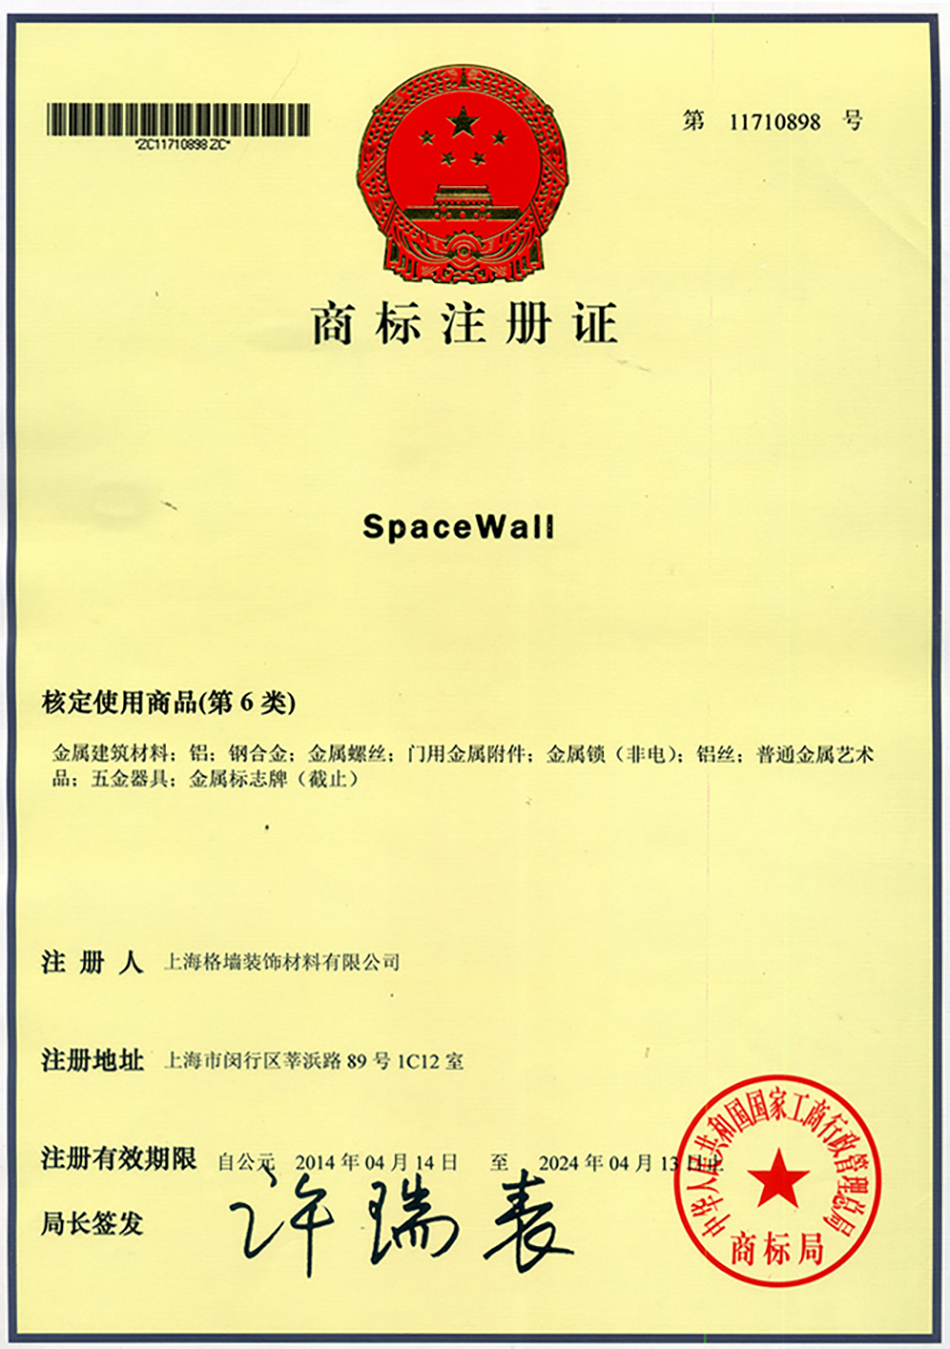 SpaceWall6类商标